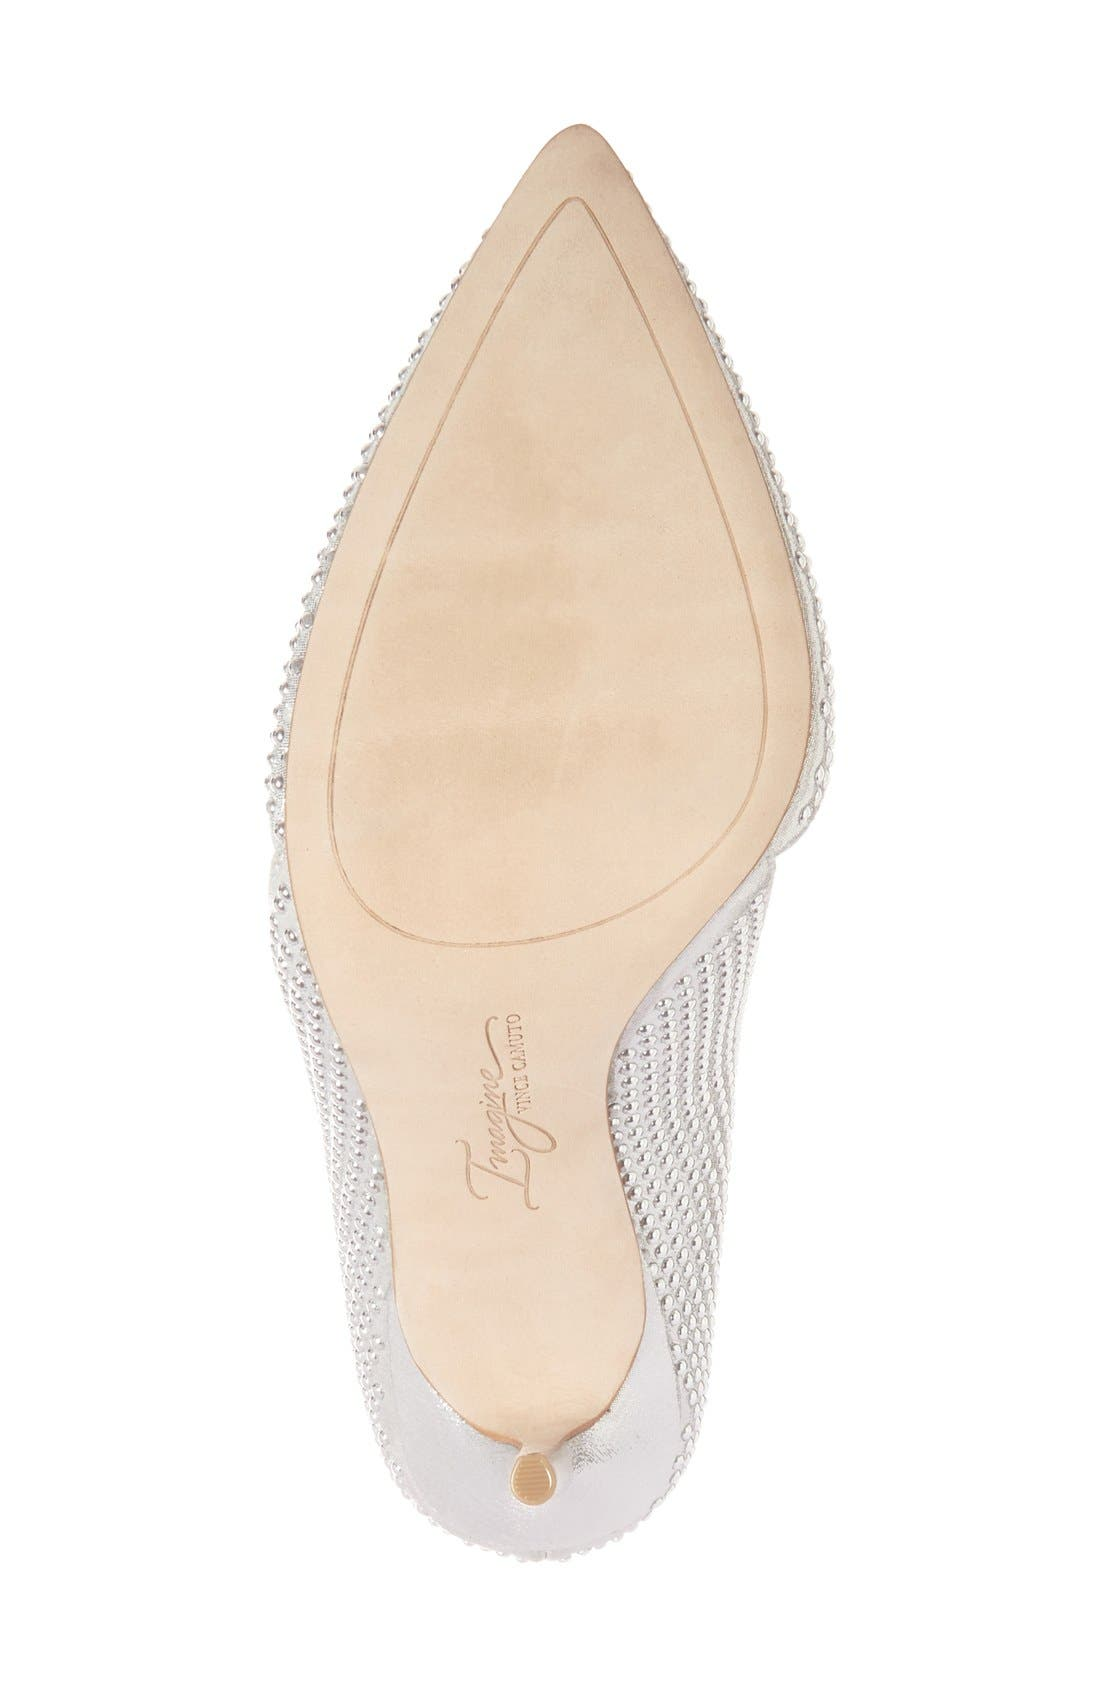 Imagine Vince Camuto 'Ossie' d'Orsay Pump,                             Alternate thumbnail 4, color,                             Platinum Shimmer